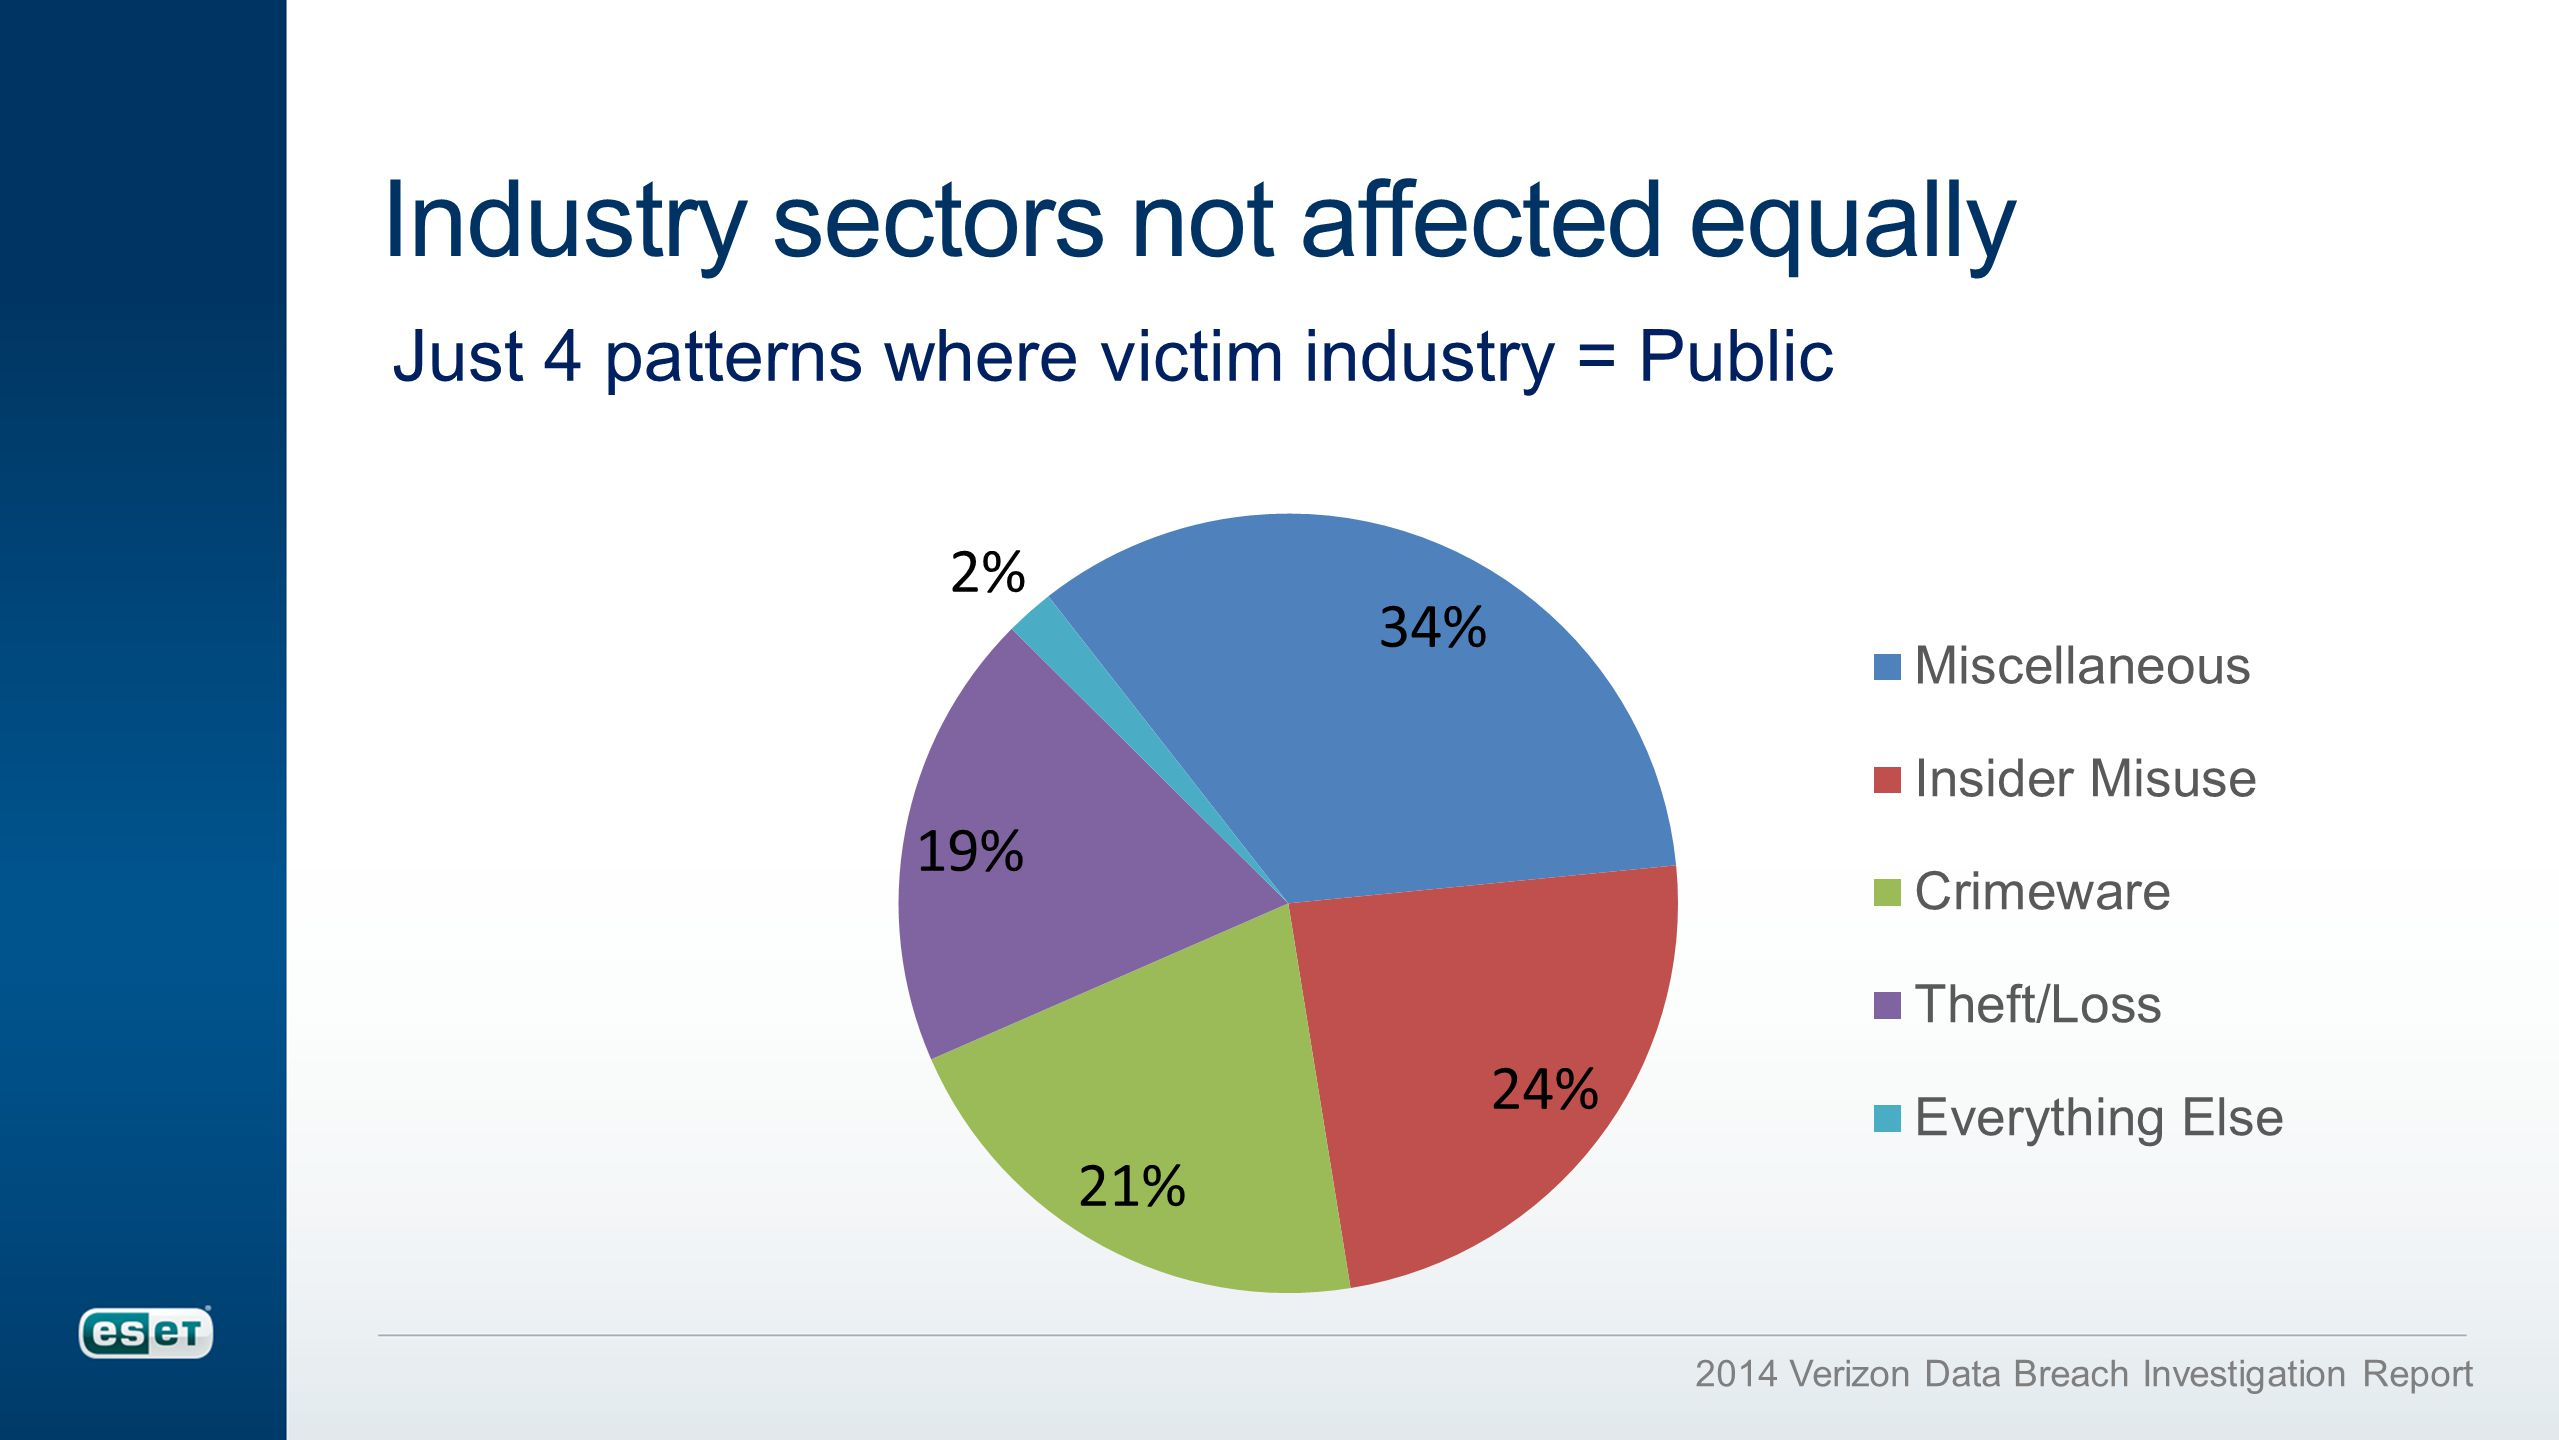 Industry sectors not affected equally Just 4 patterns where victim industry = Public 2014 Verizon Data Breach Investigation Report